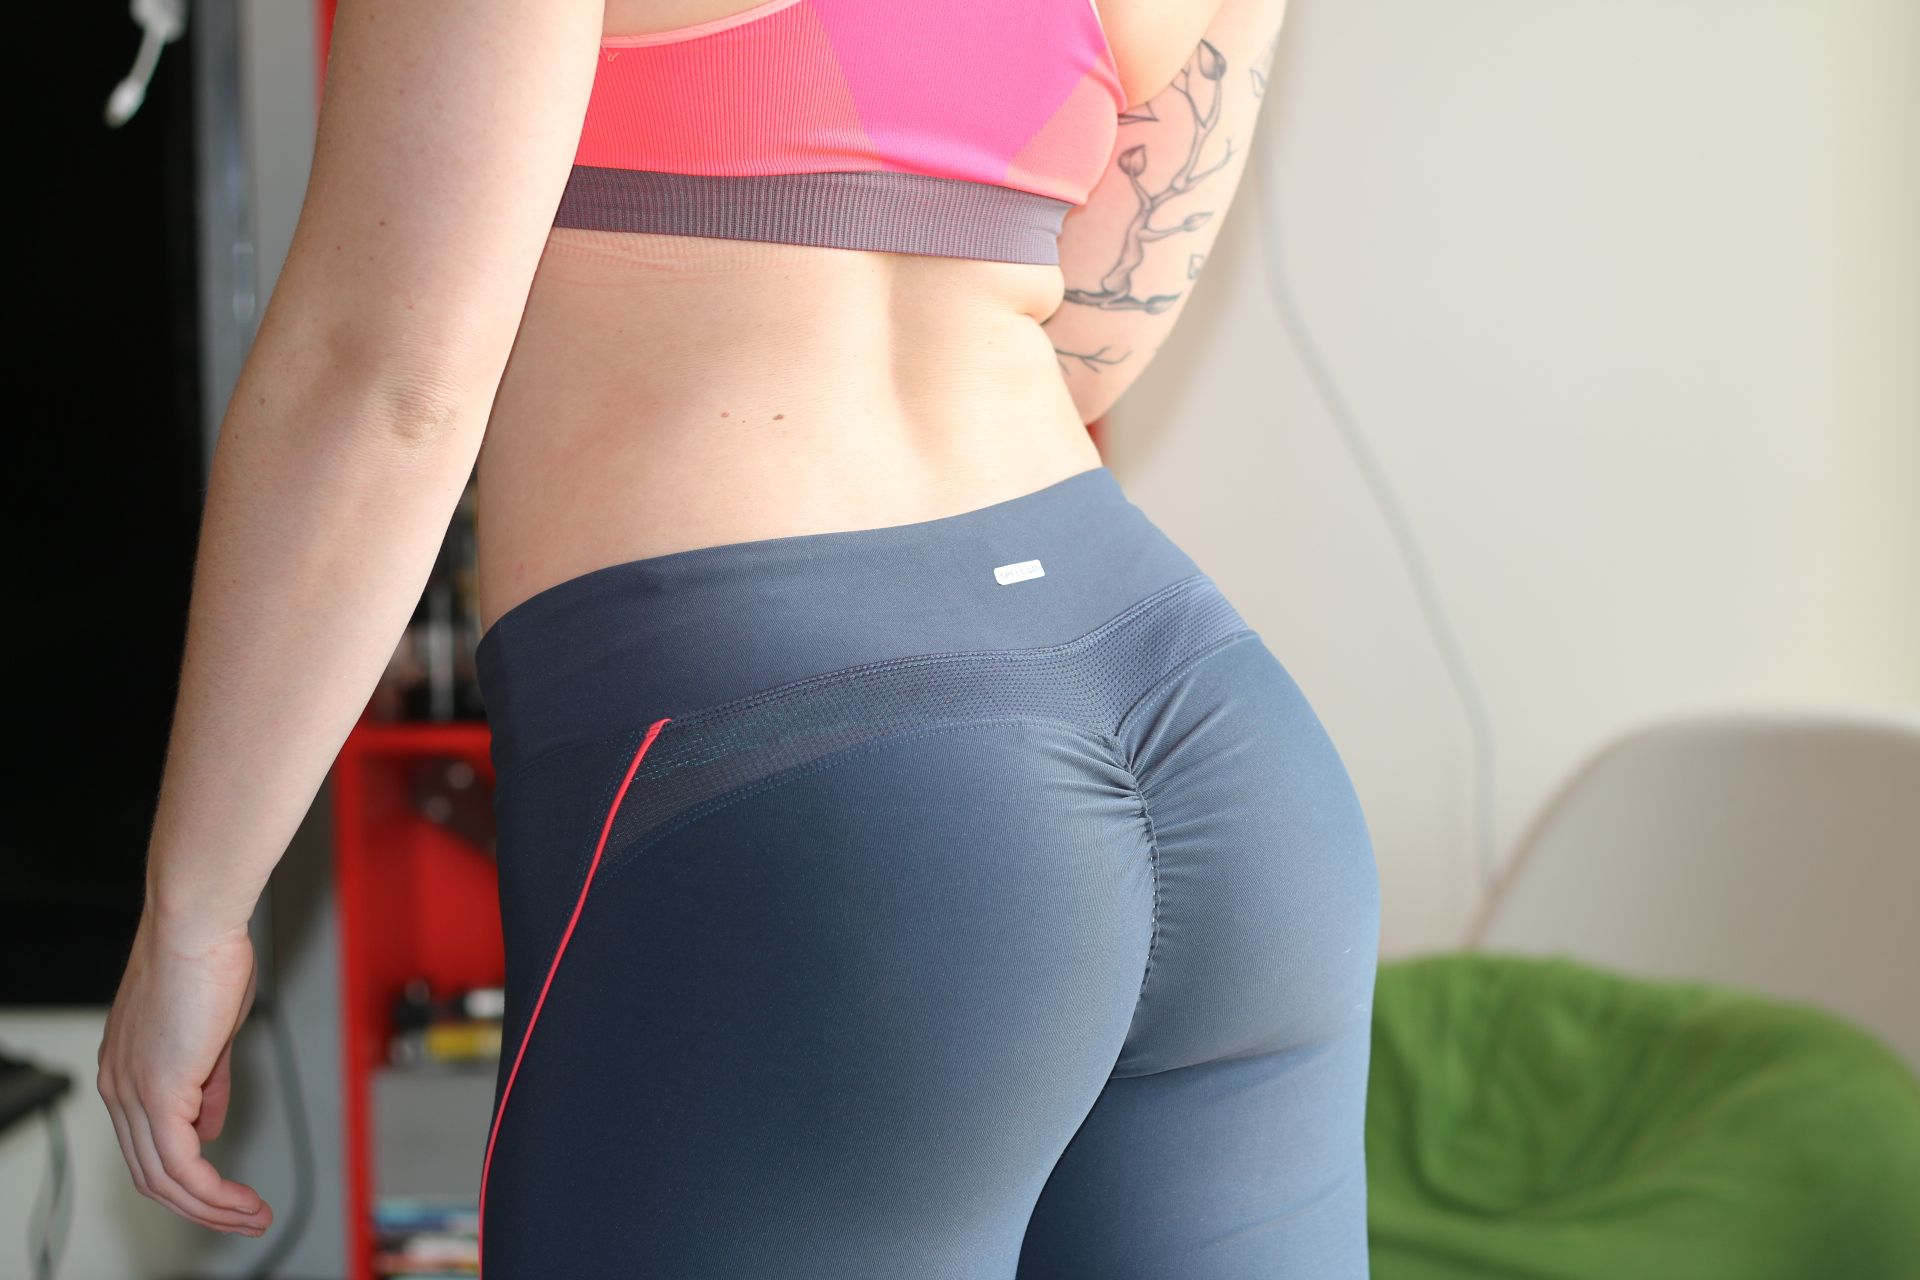 468d18e1a071f0 Learn how to make super easy DIY scrunch butt leggings in under 10 minutes.  These are guaranteed to accentuate your curves without breaking the bank!